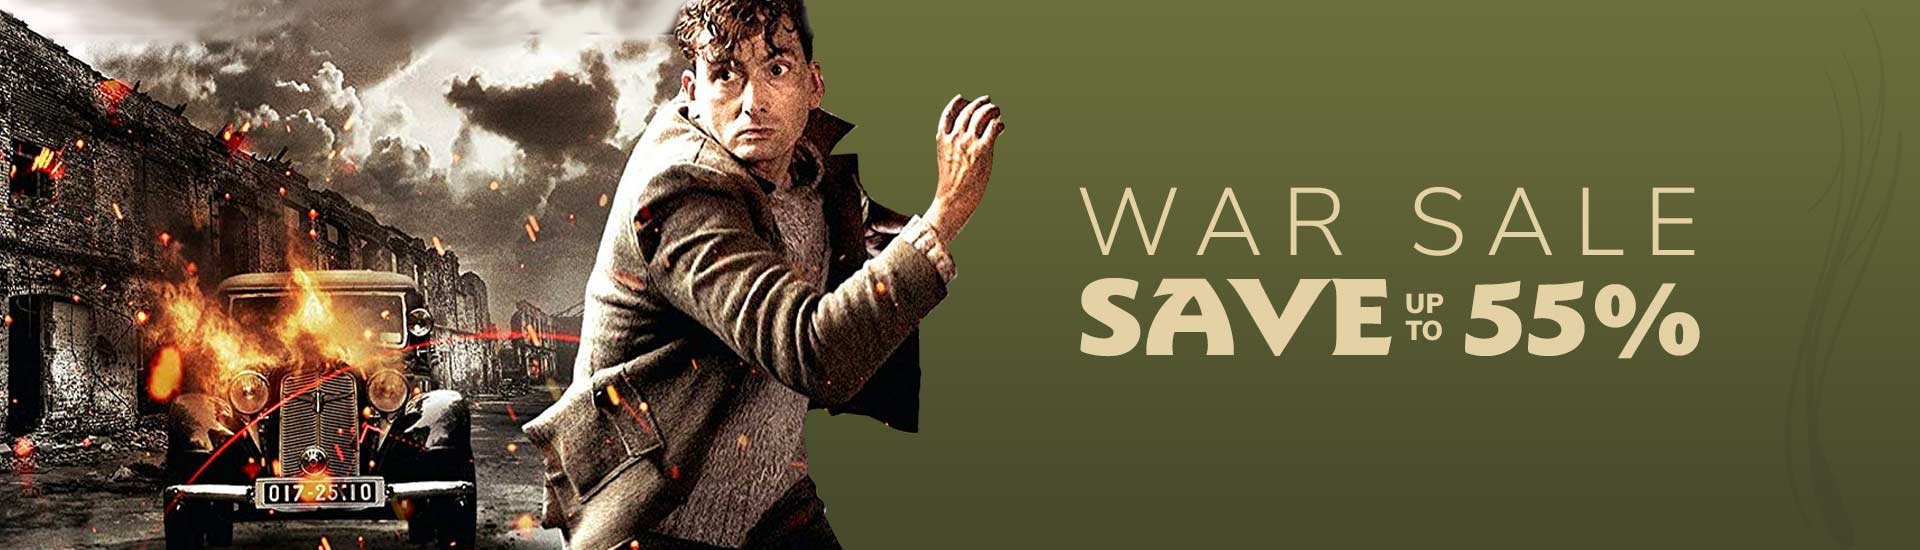 War Sale, save up to 55%